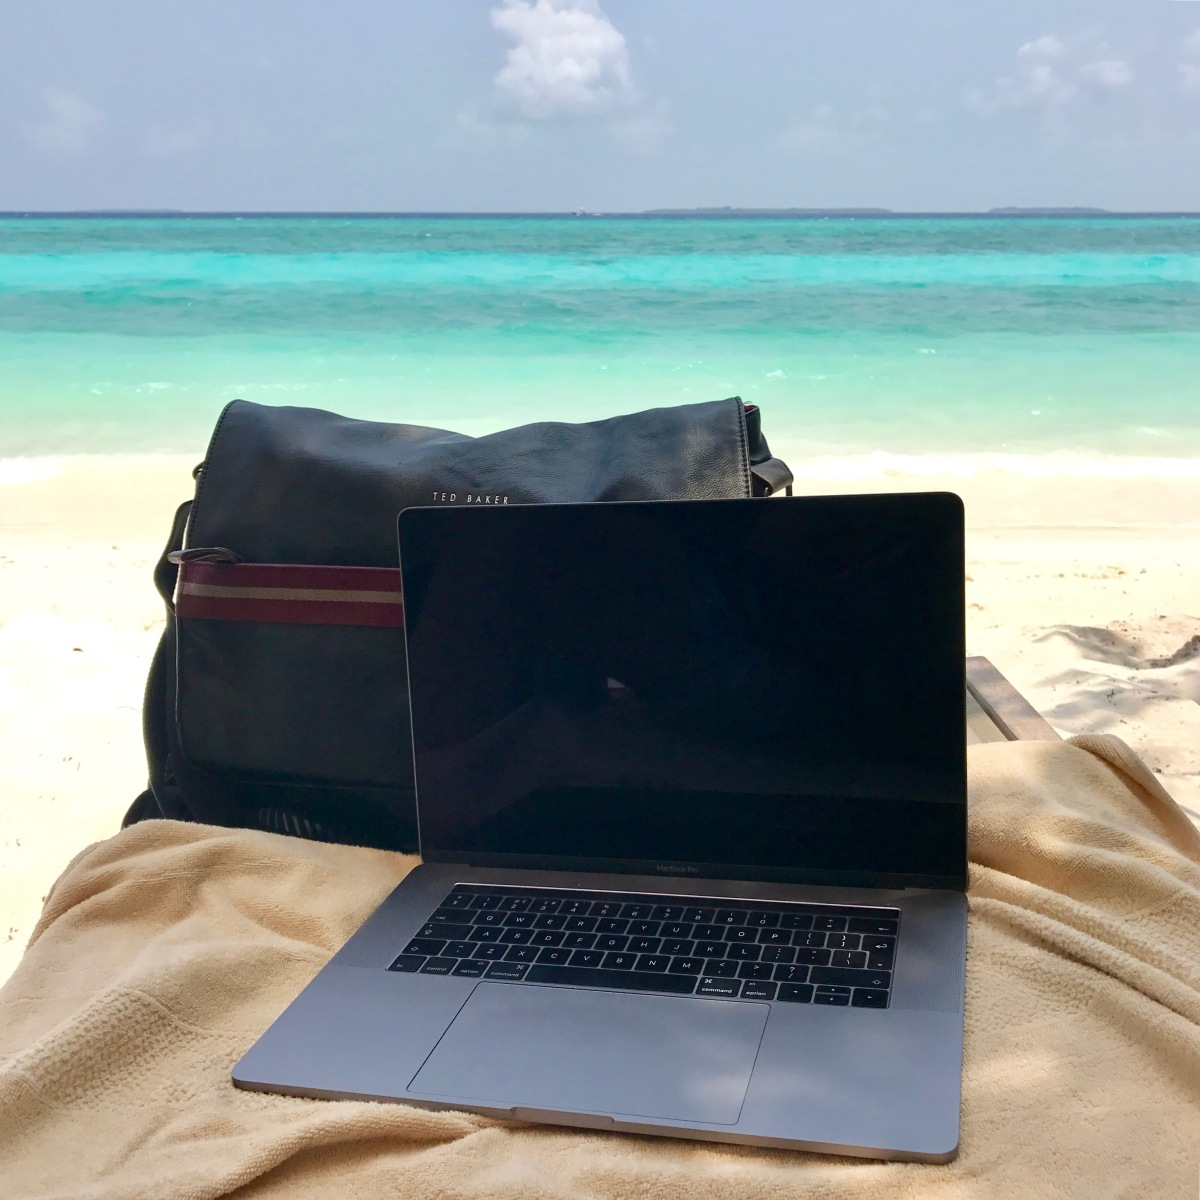 The Maldives : Work Life Travel Review